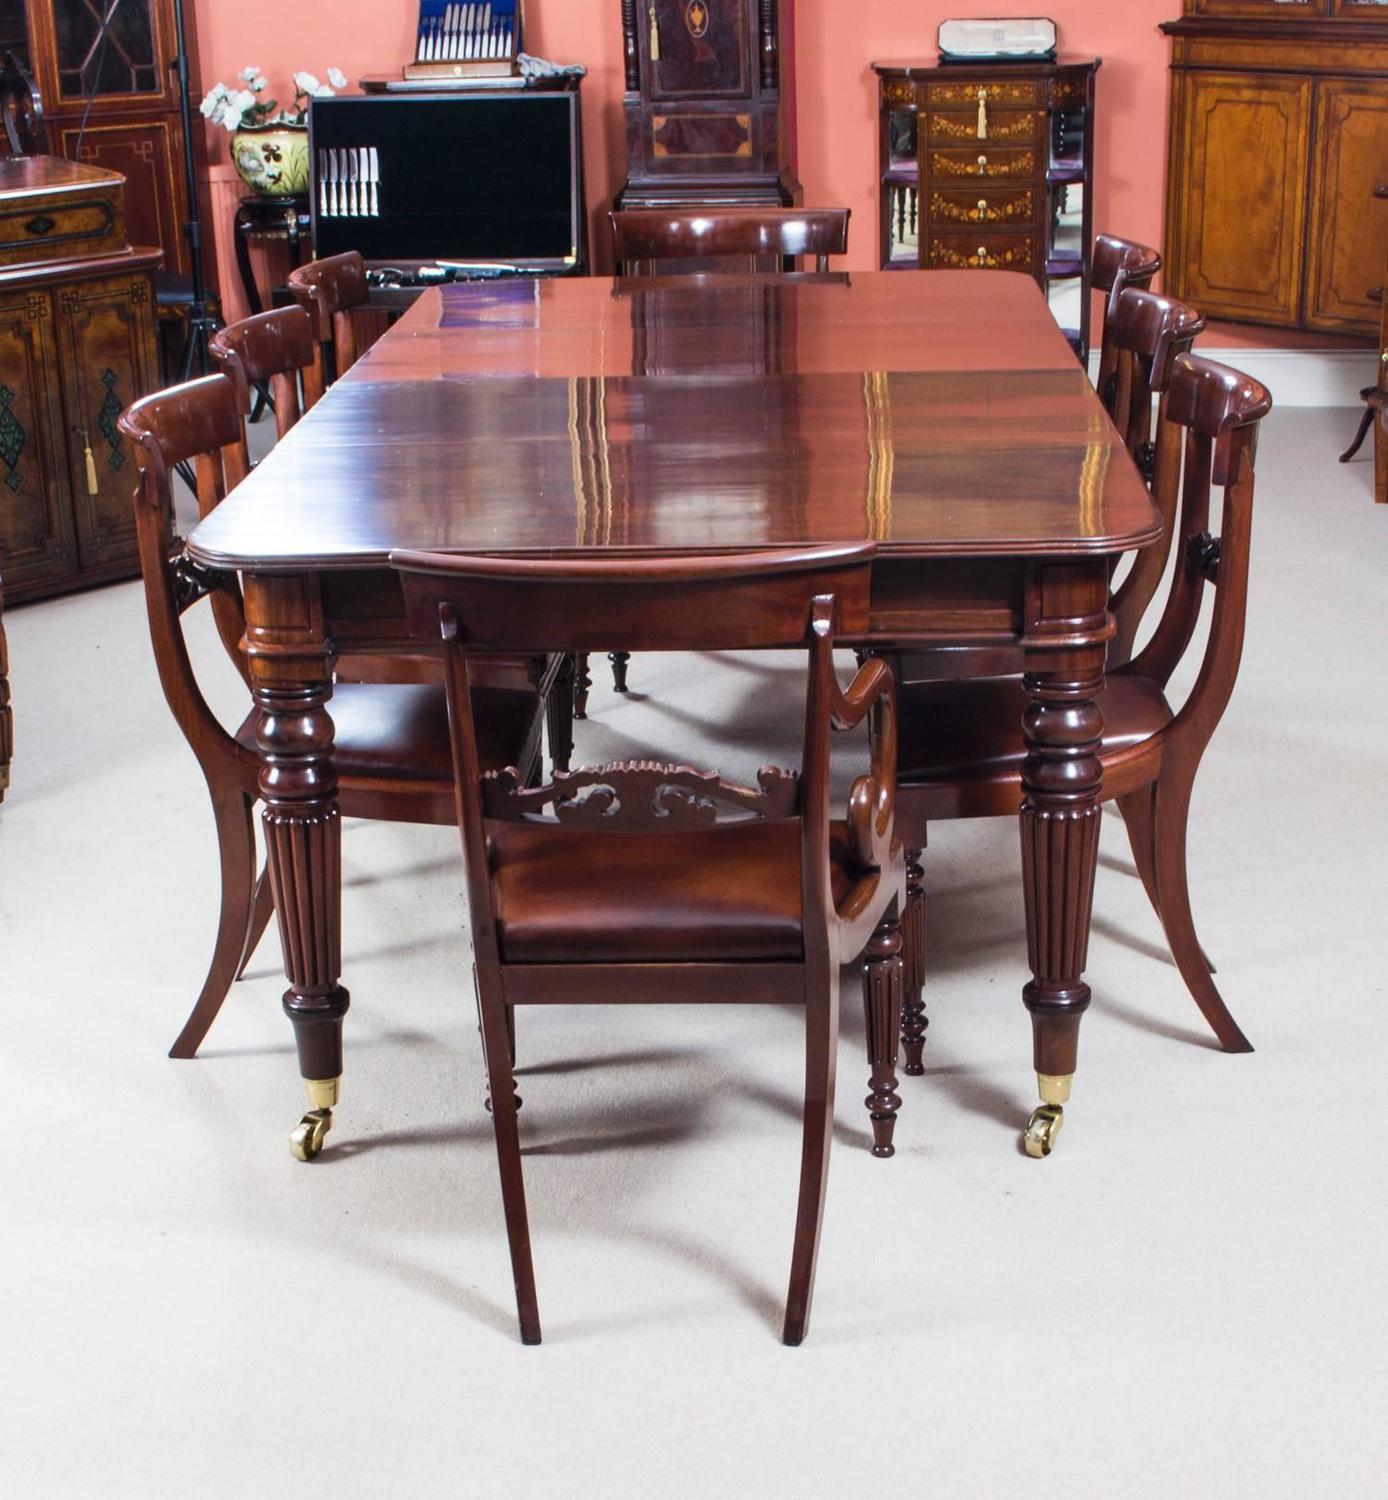 Antique Mahogany Dining Room Furniture: Antique Regency Mahogany Dining Table Eight Regency Chairs